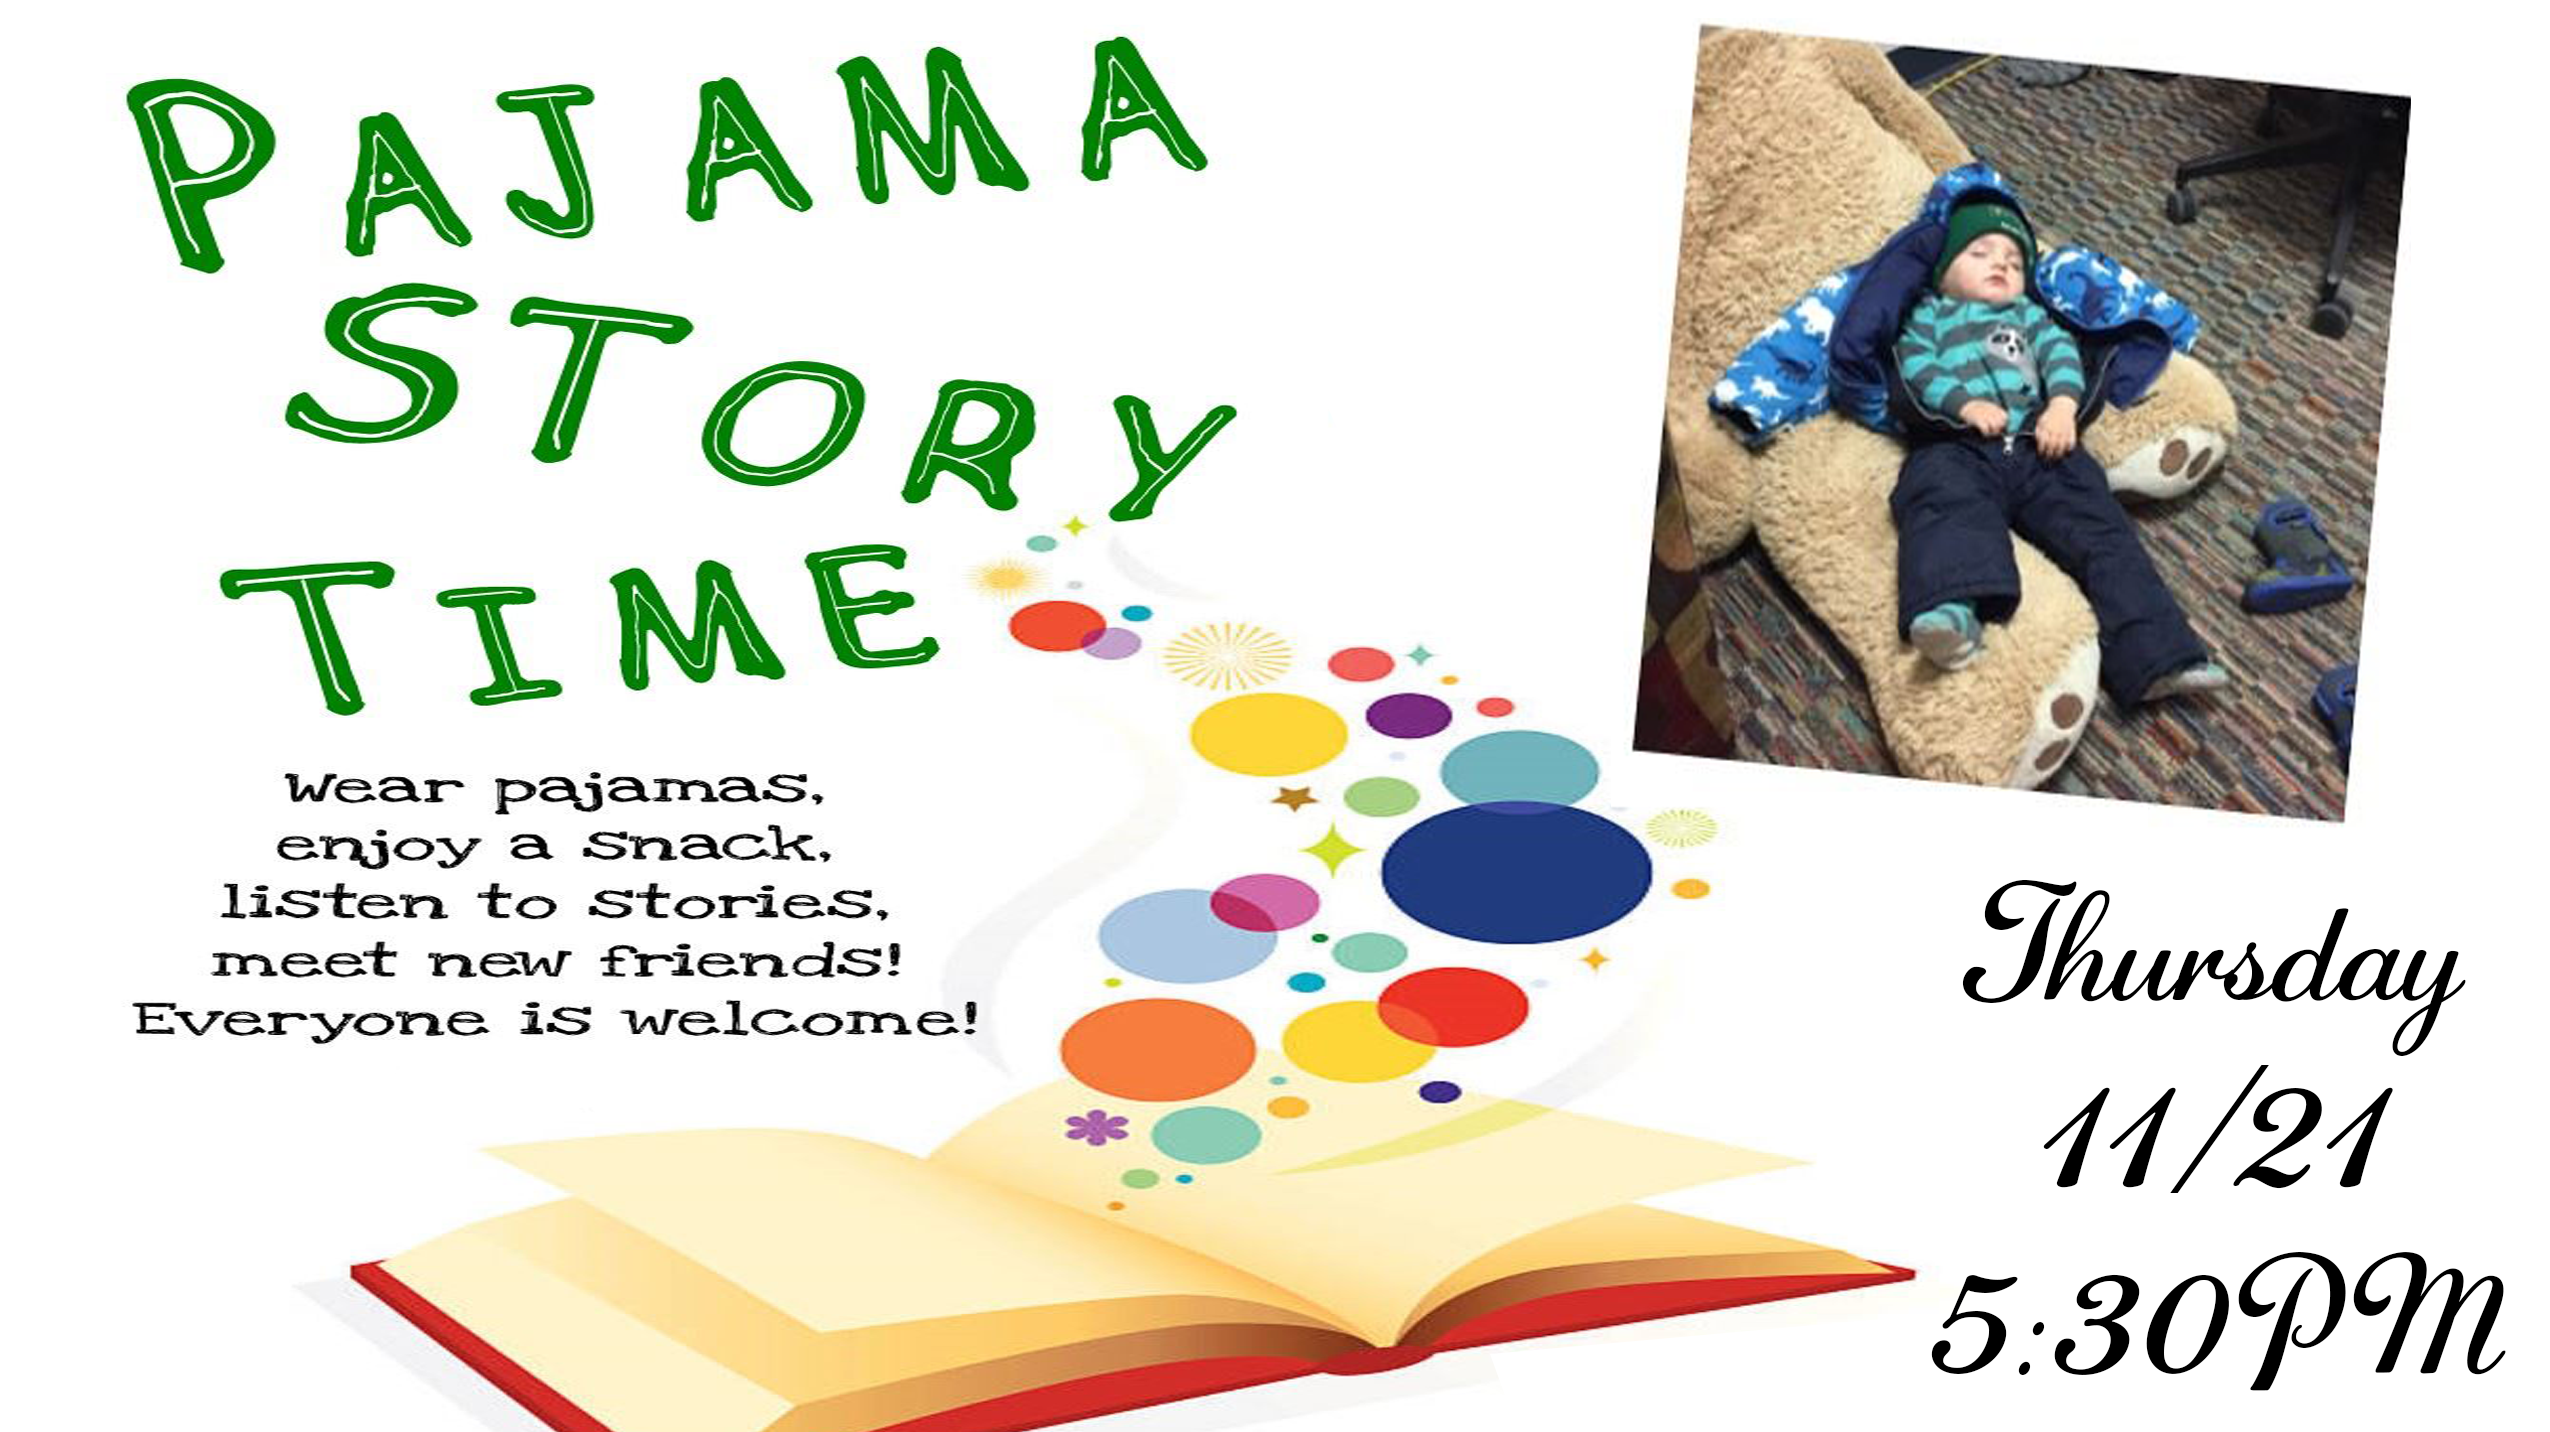 pj-storytime 11/21 5:30pm at the library